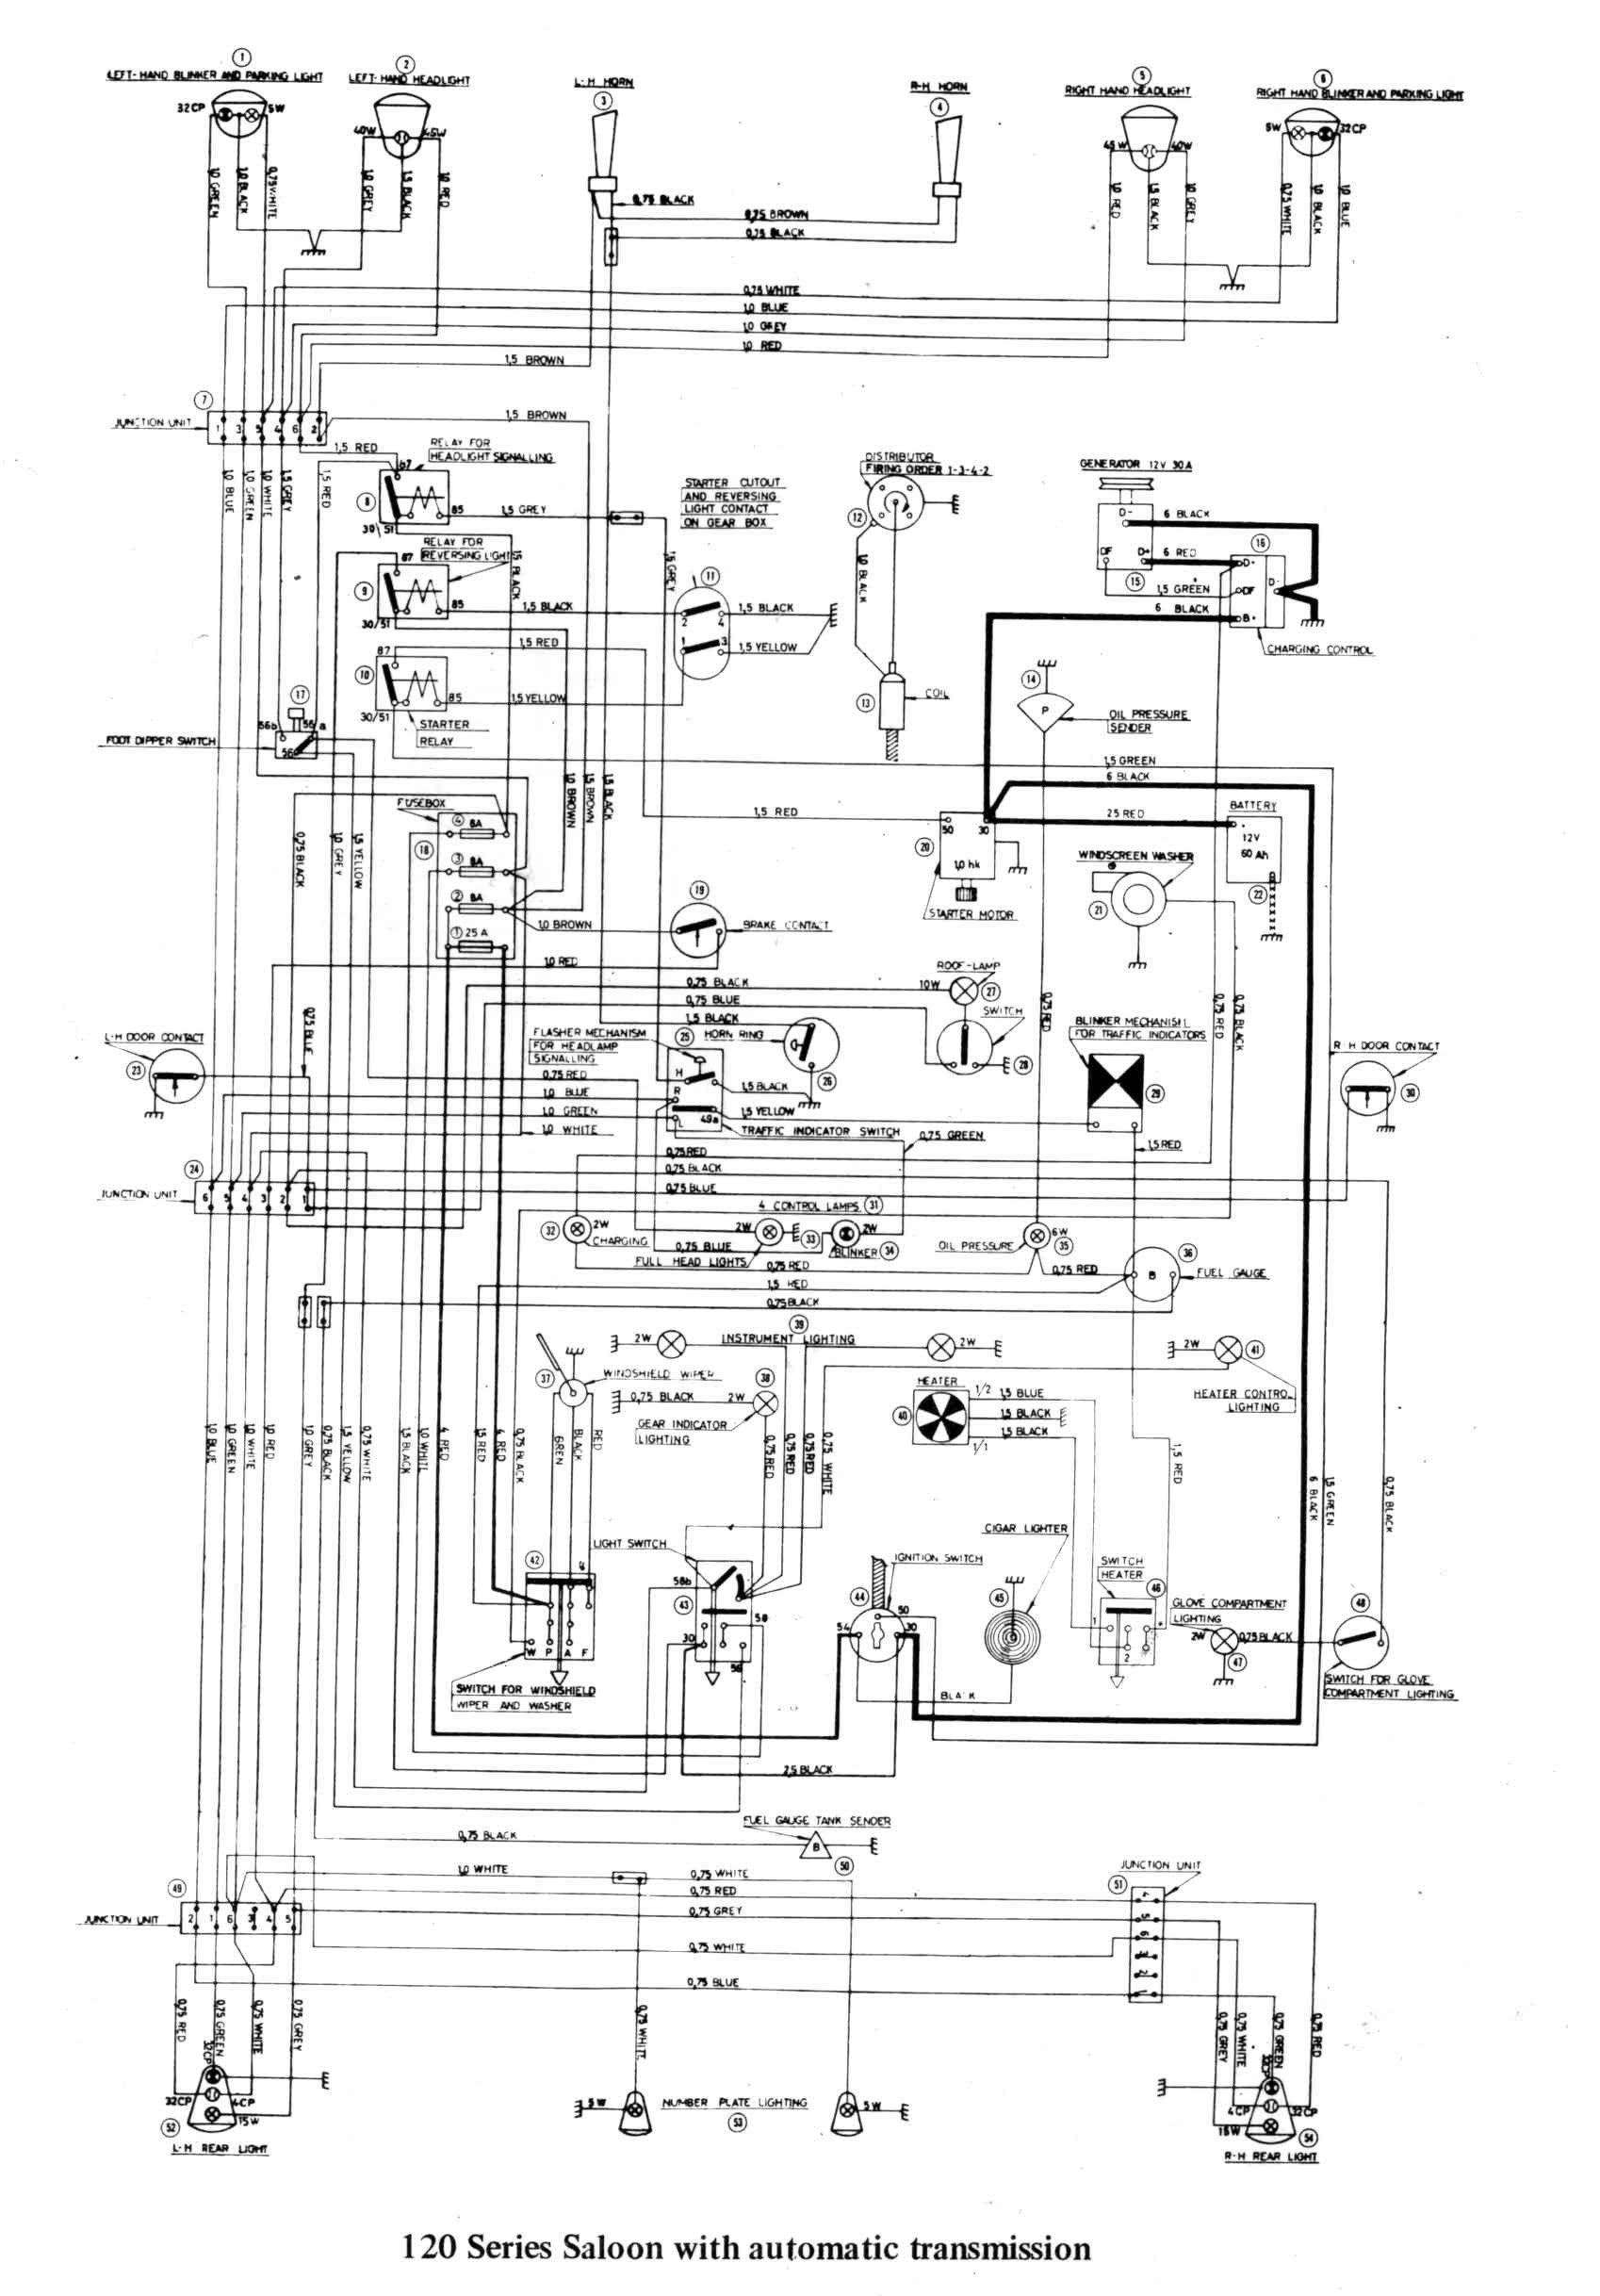 Bentley W12 Engine Diagram | My Wiring DIagram